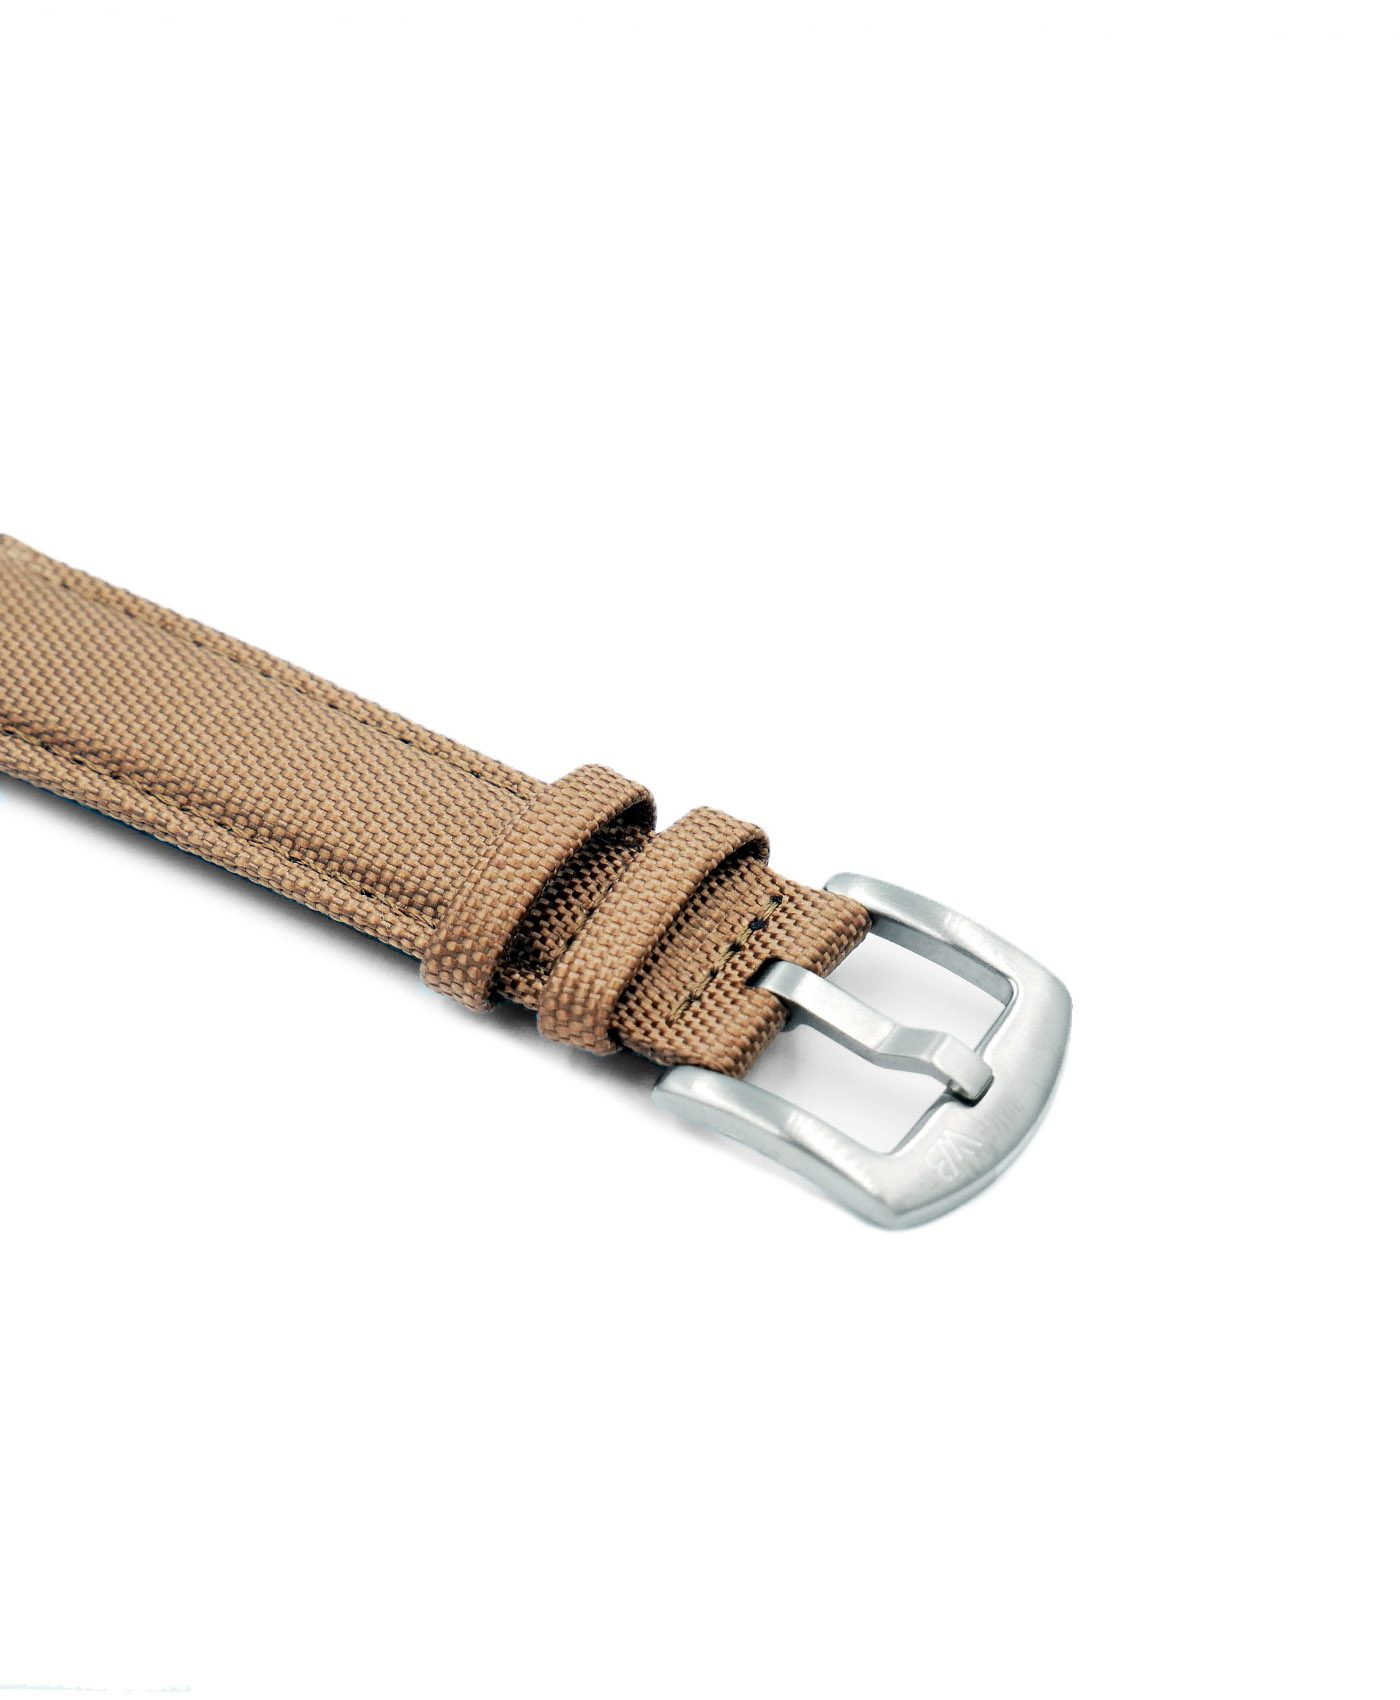 Cordura Watch Strap khaki stainless steel buckle by Watchbandit